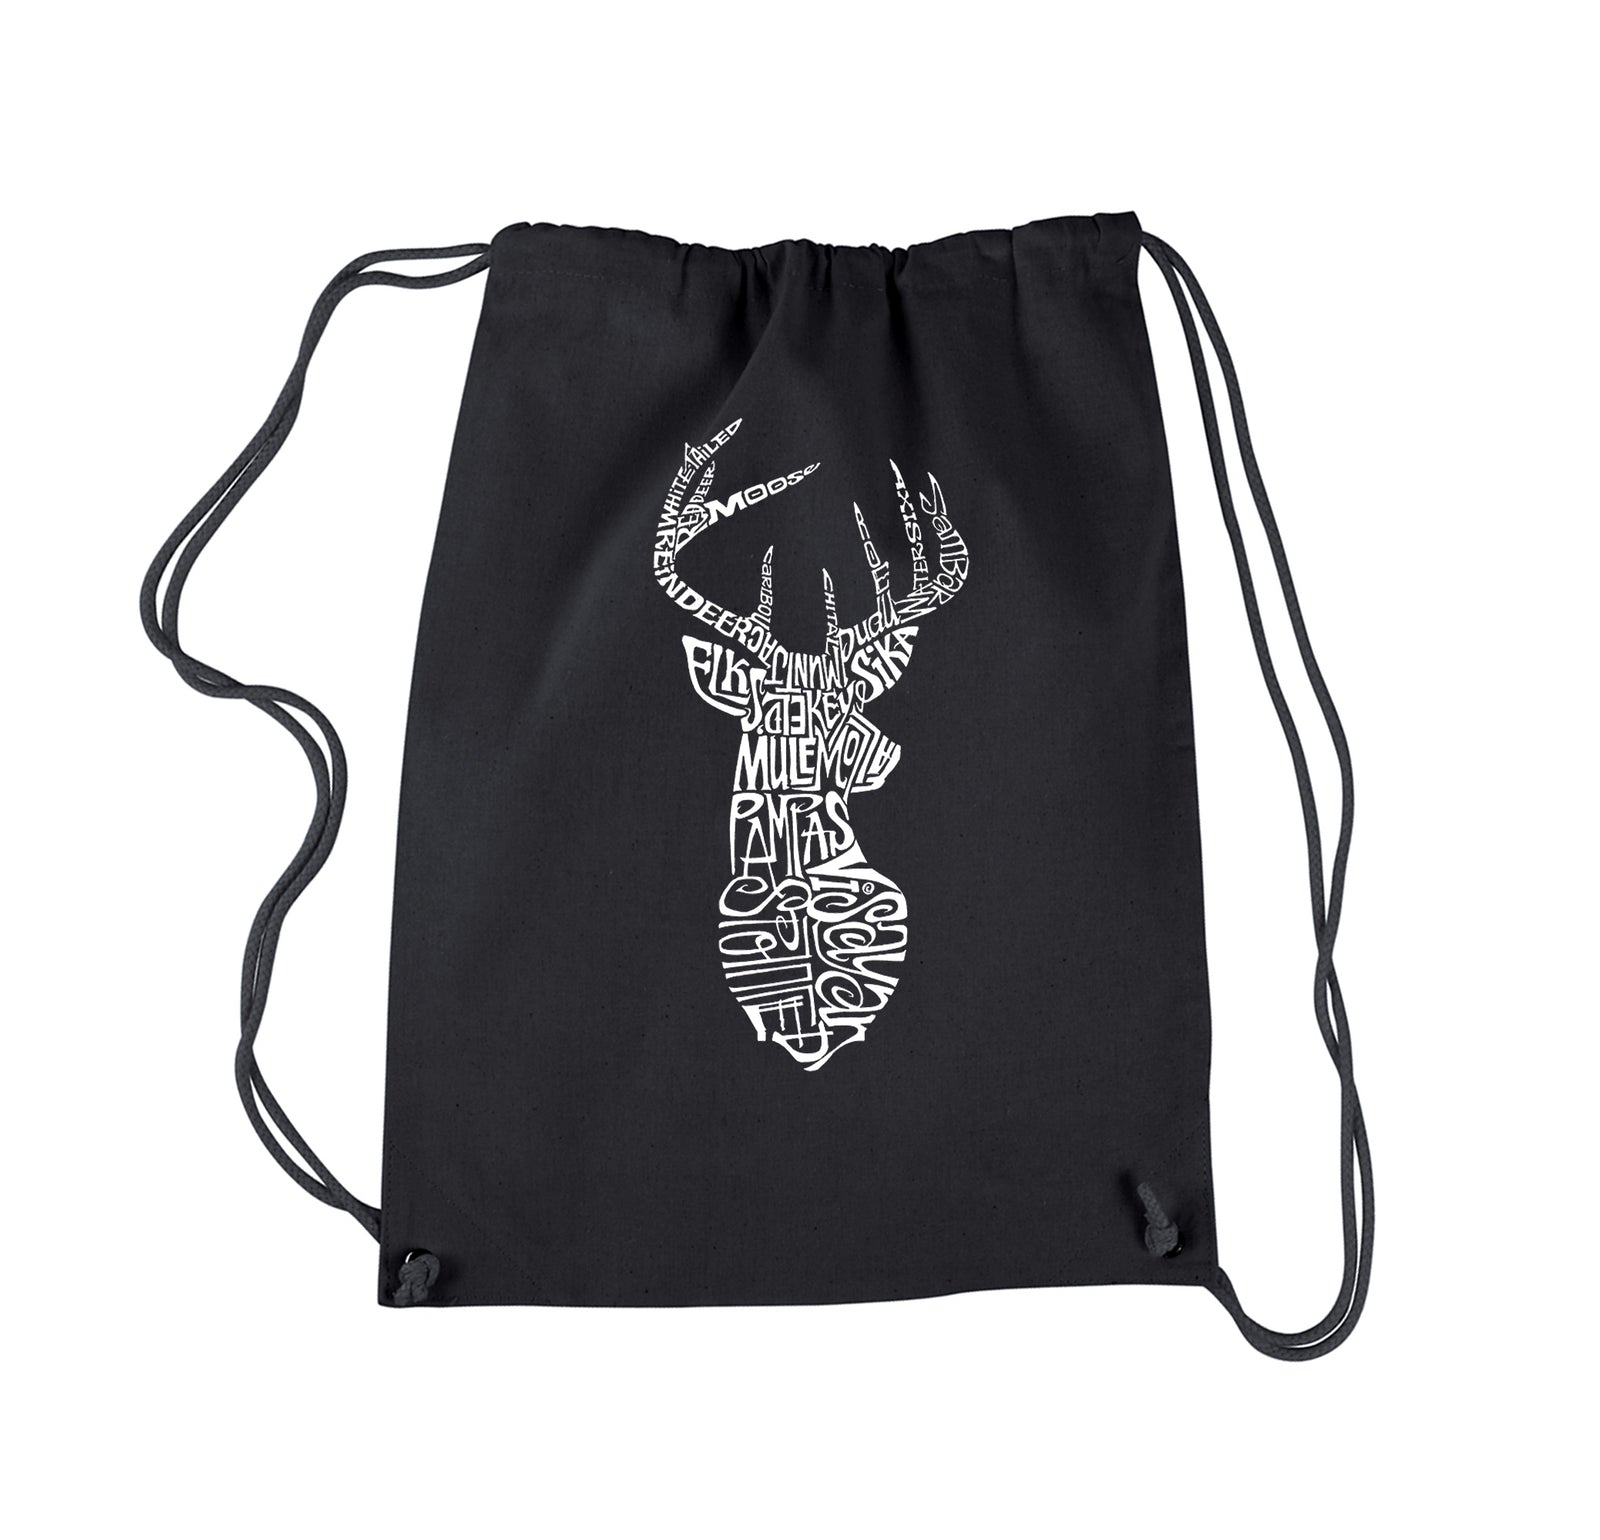 Drawstring Backpack - Types of Deer